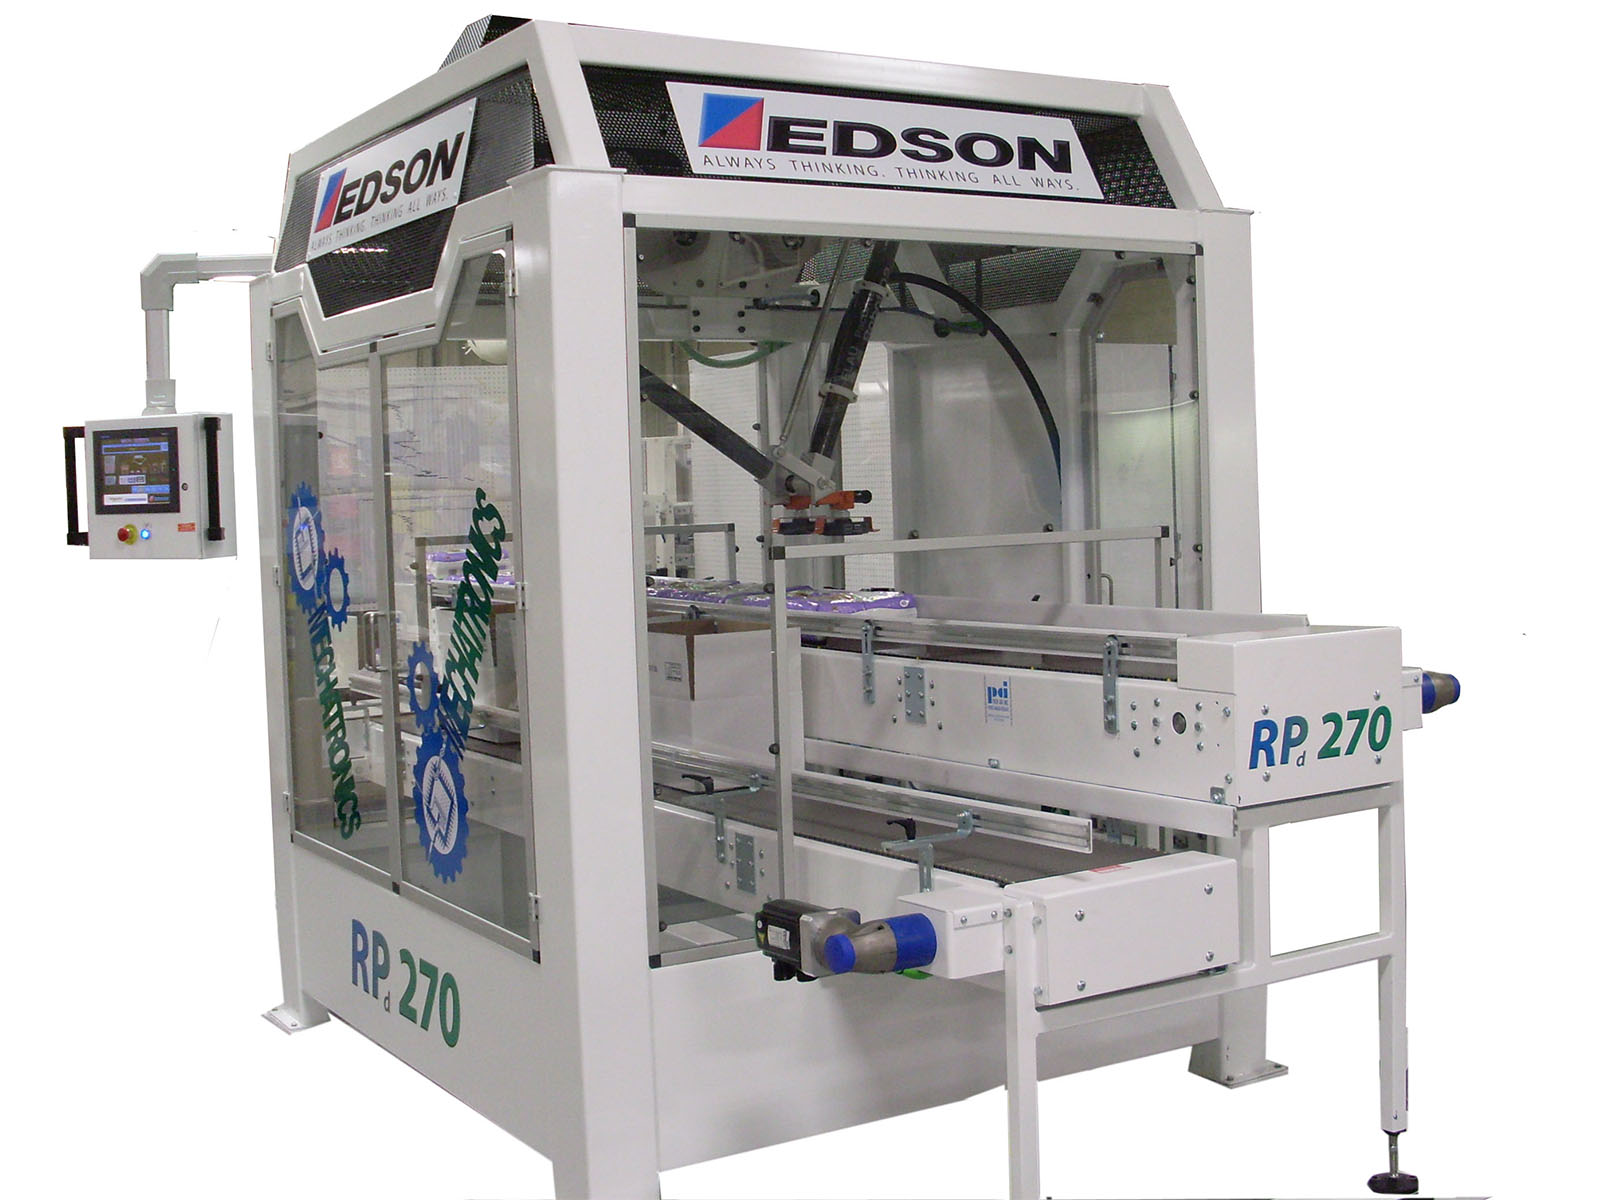 Edson Robotic Top Load Case Rpd270